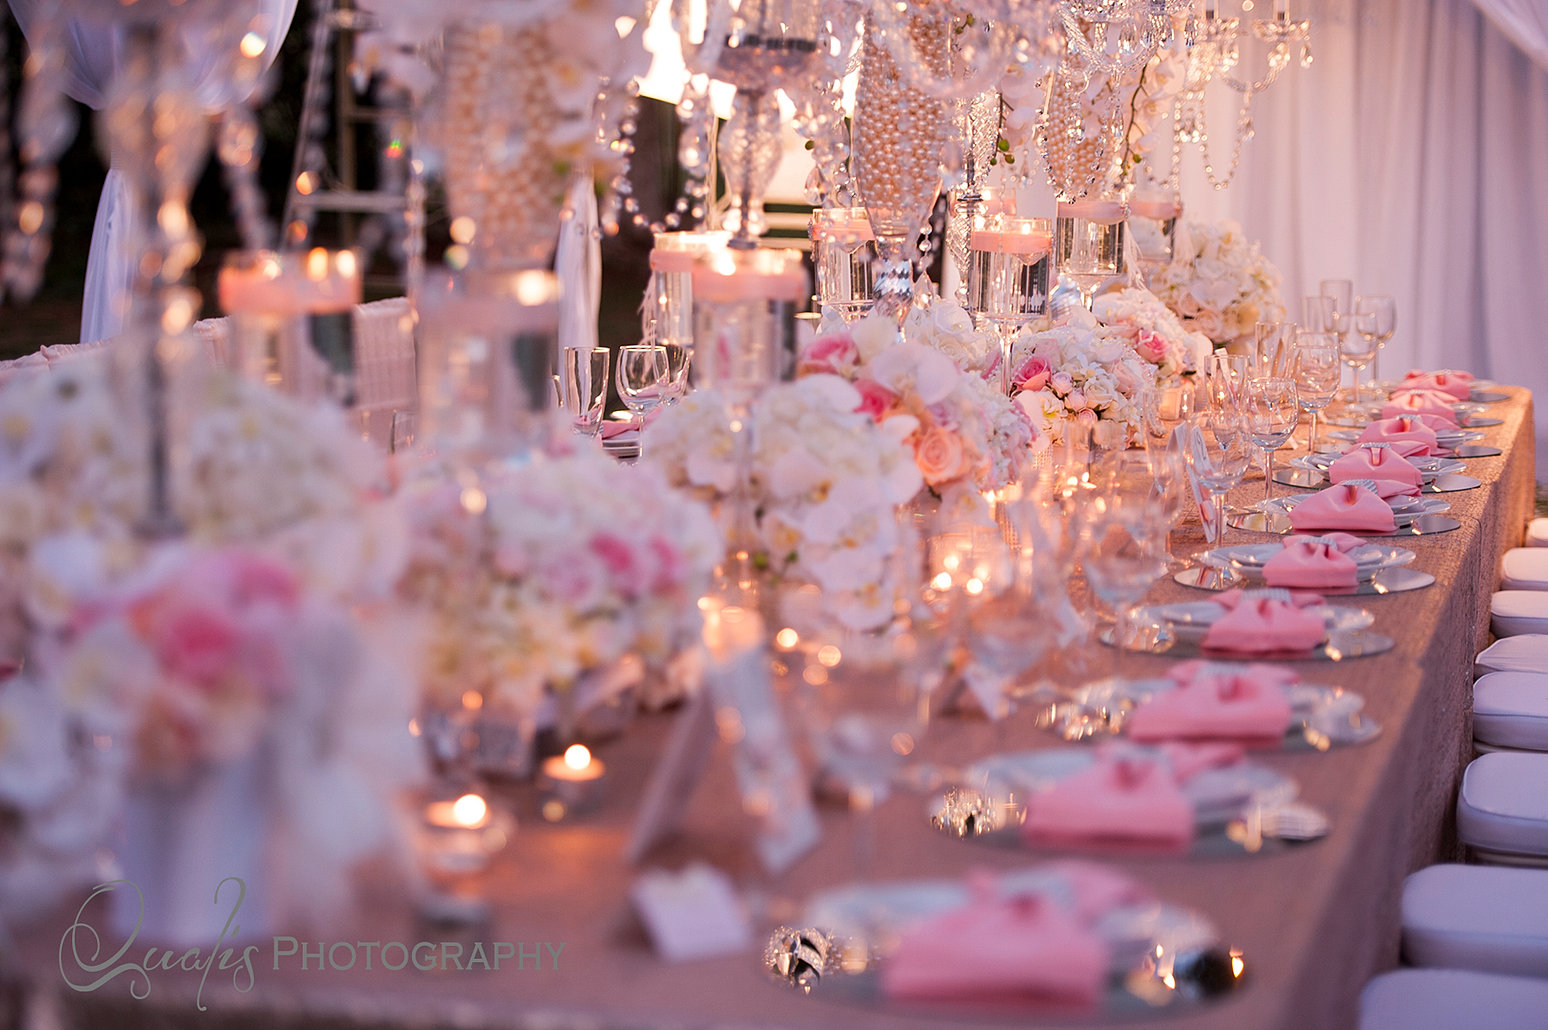 Wedding event hire brisbane gold coast turning paige queensland wedding decor decorations pink junglespirit Image collections